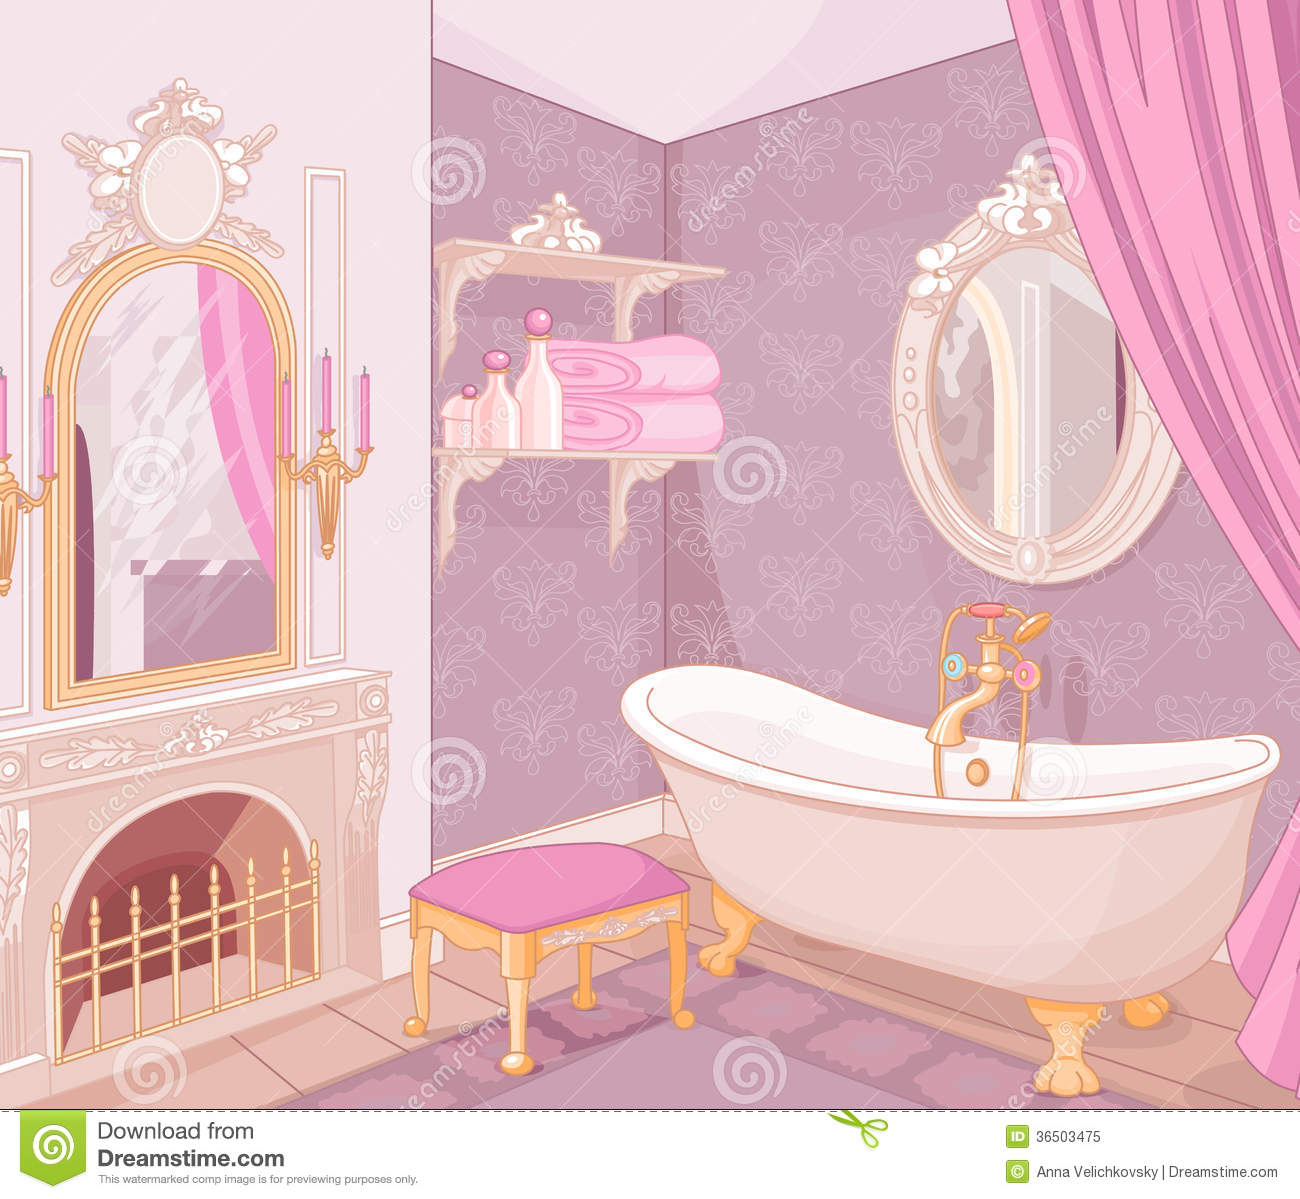 ... Of Bathroom In The Palace Royalty Free Stock Photo - Image: 36503475